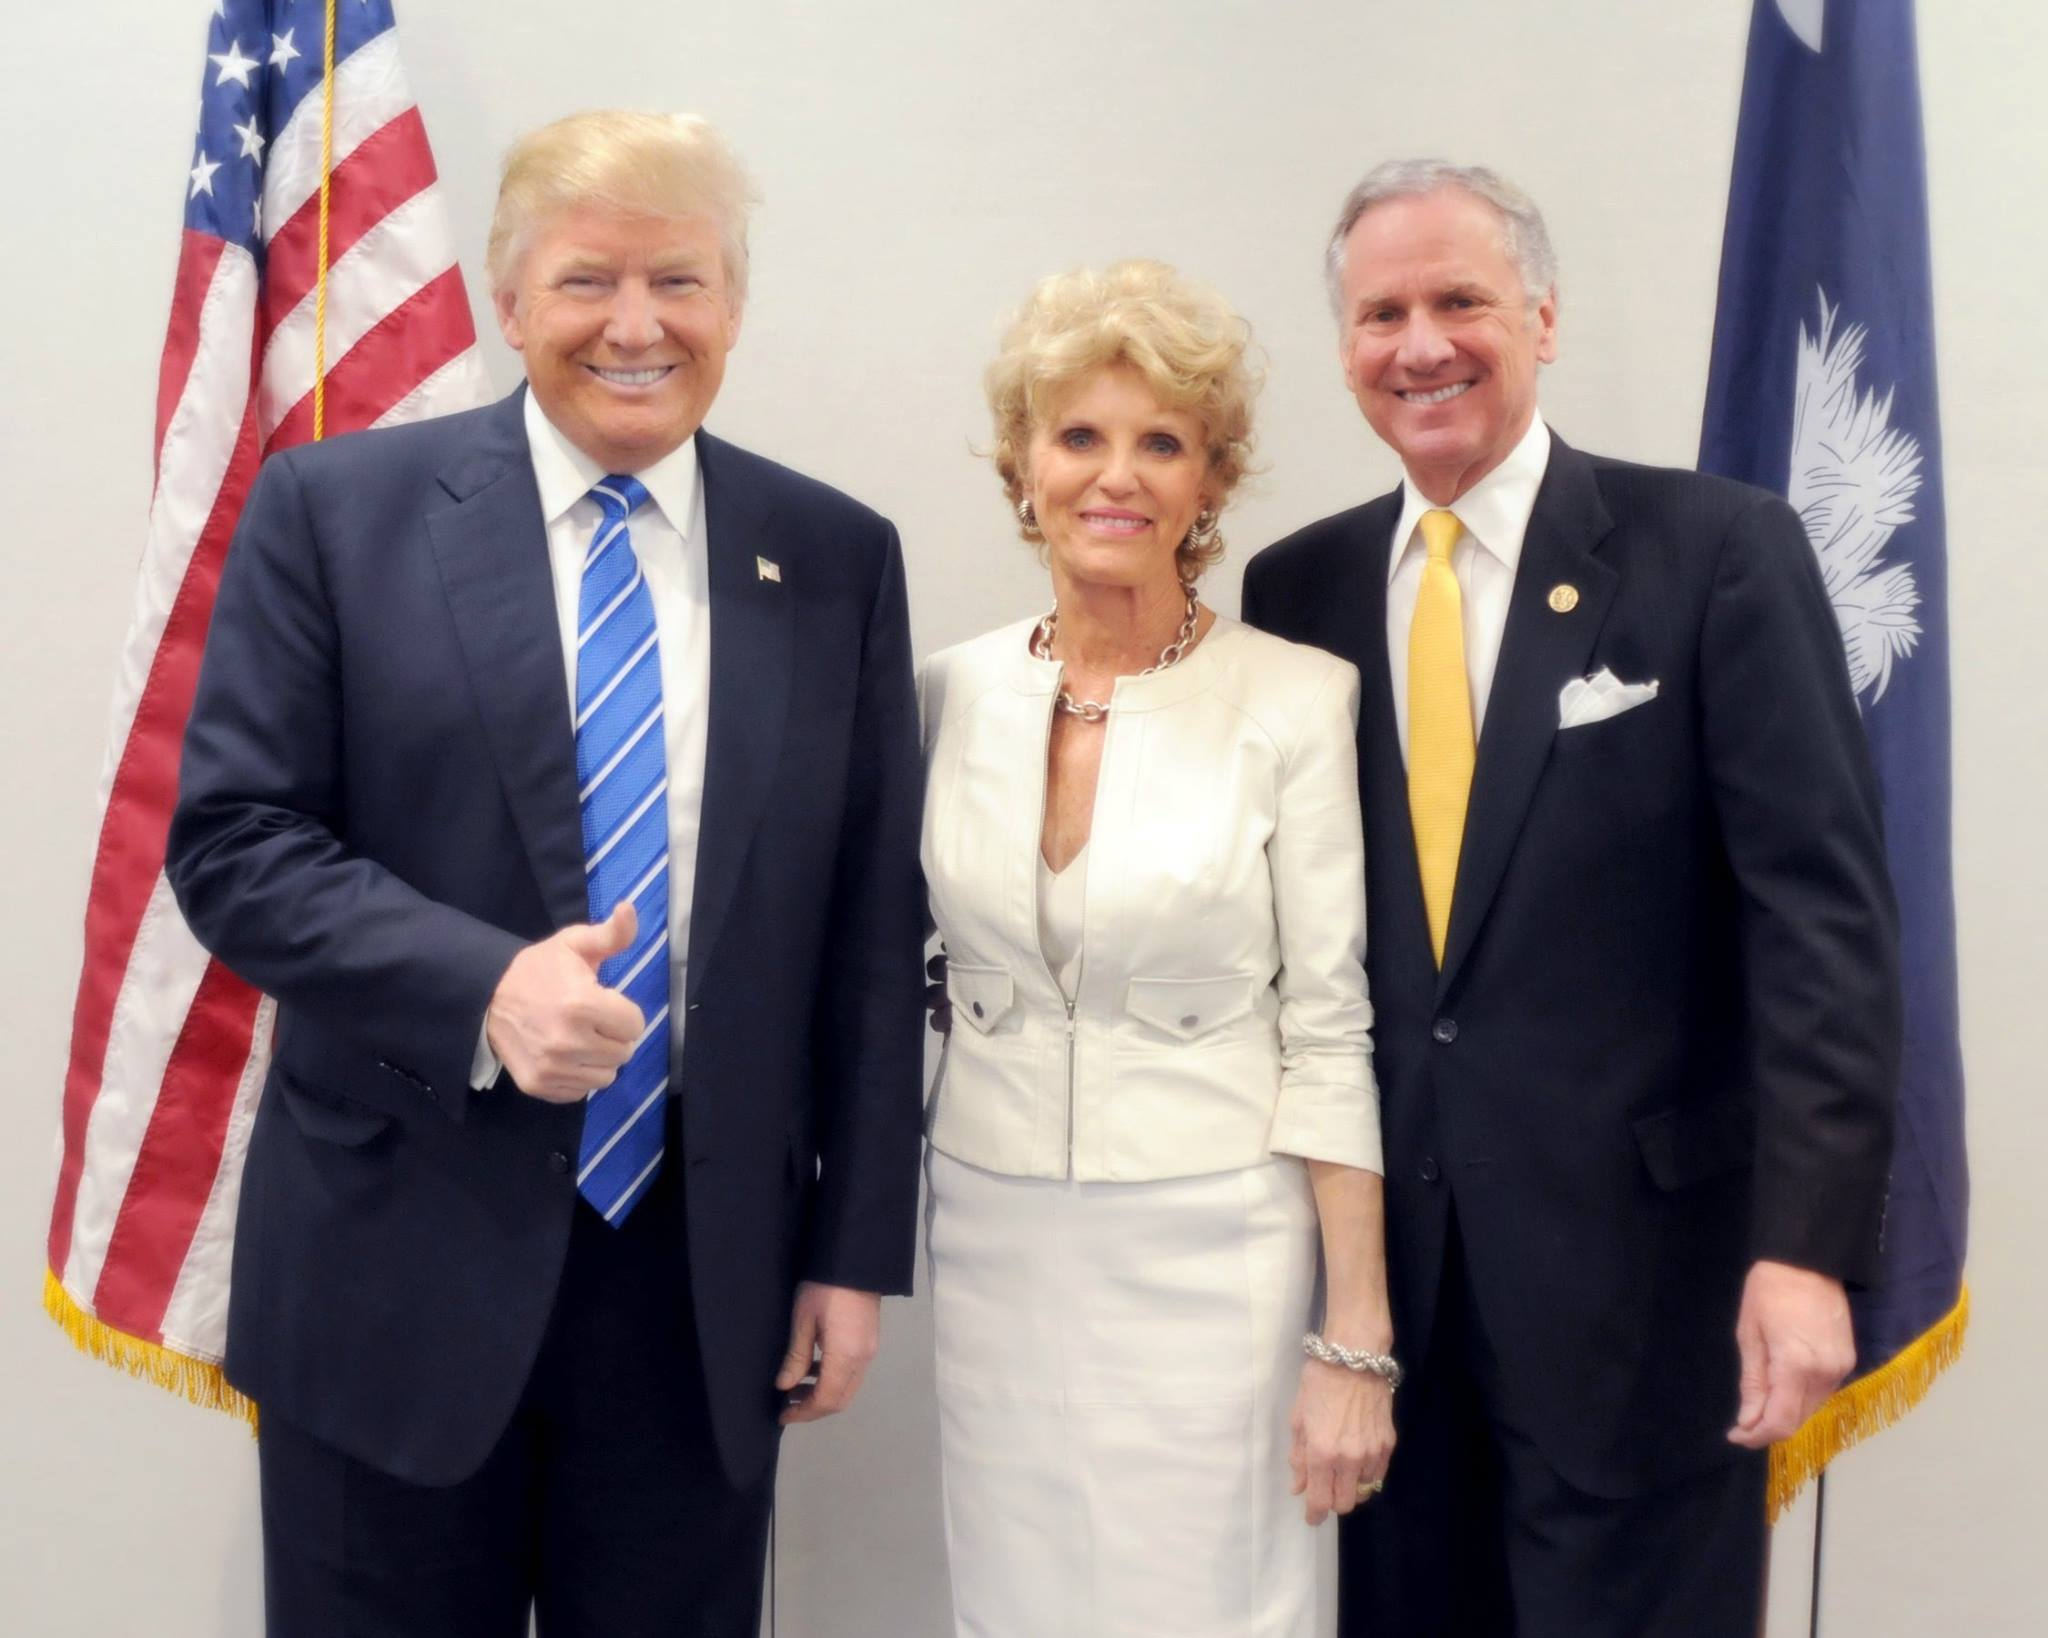 From right: Then-candidate Donald Trump, Peggy McMaster, Gov. (then-Lt. Gov.) Henry McMaster